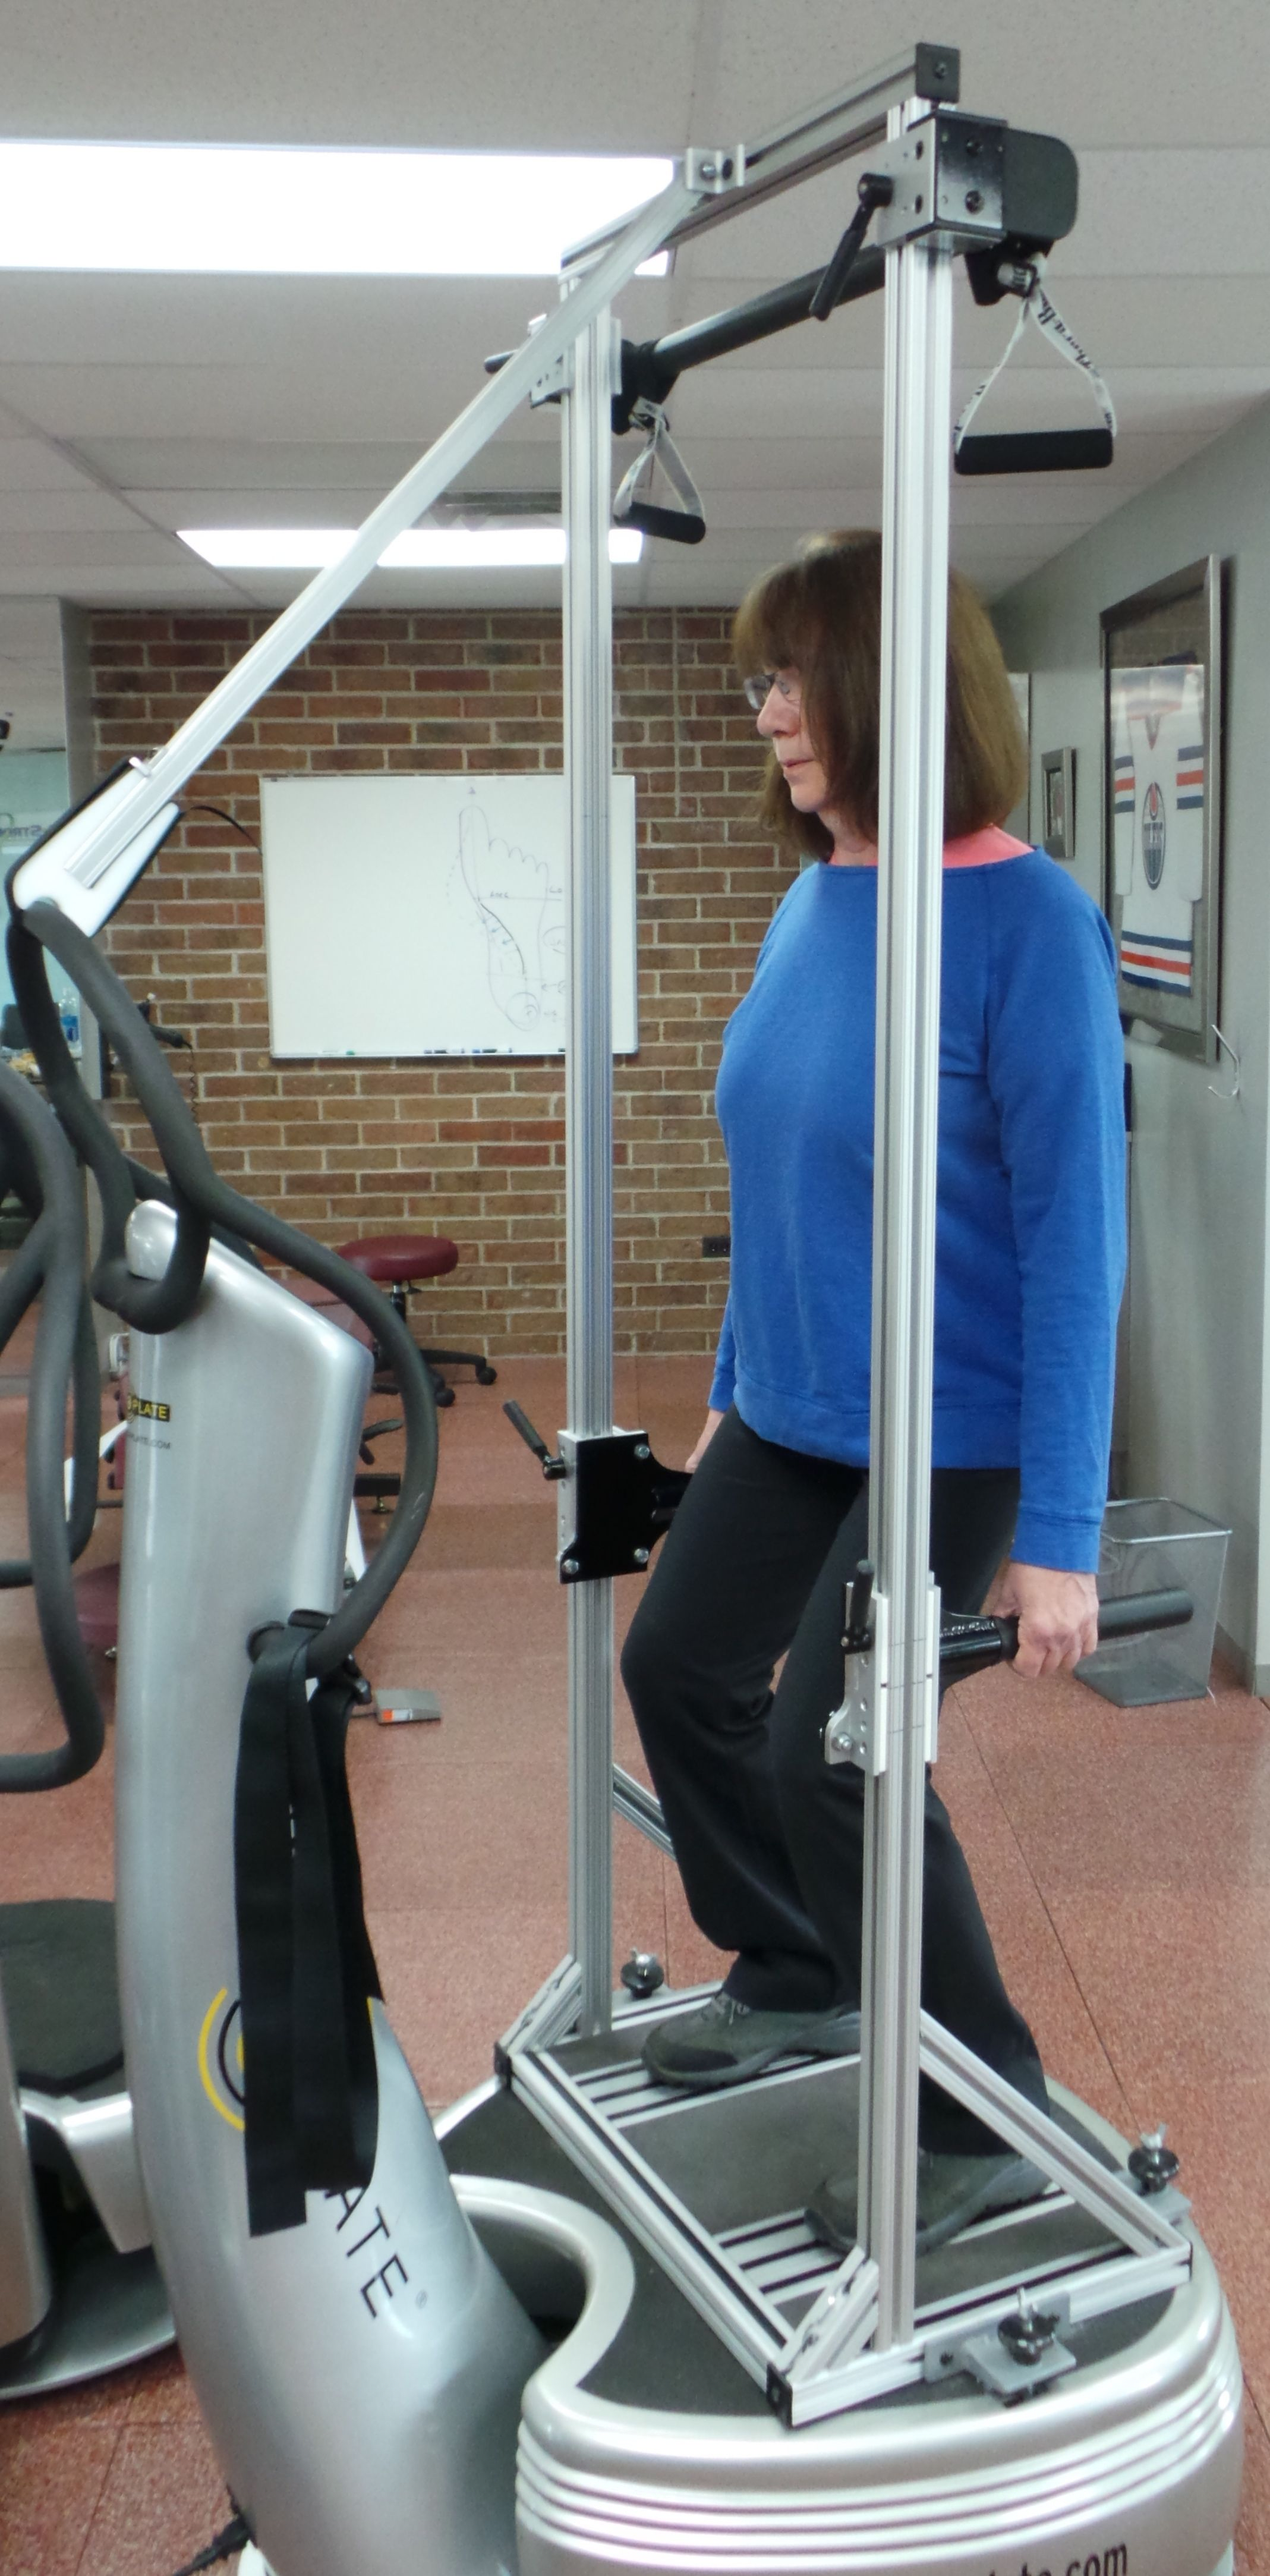 5.1 bone density increase in one year. Read about it